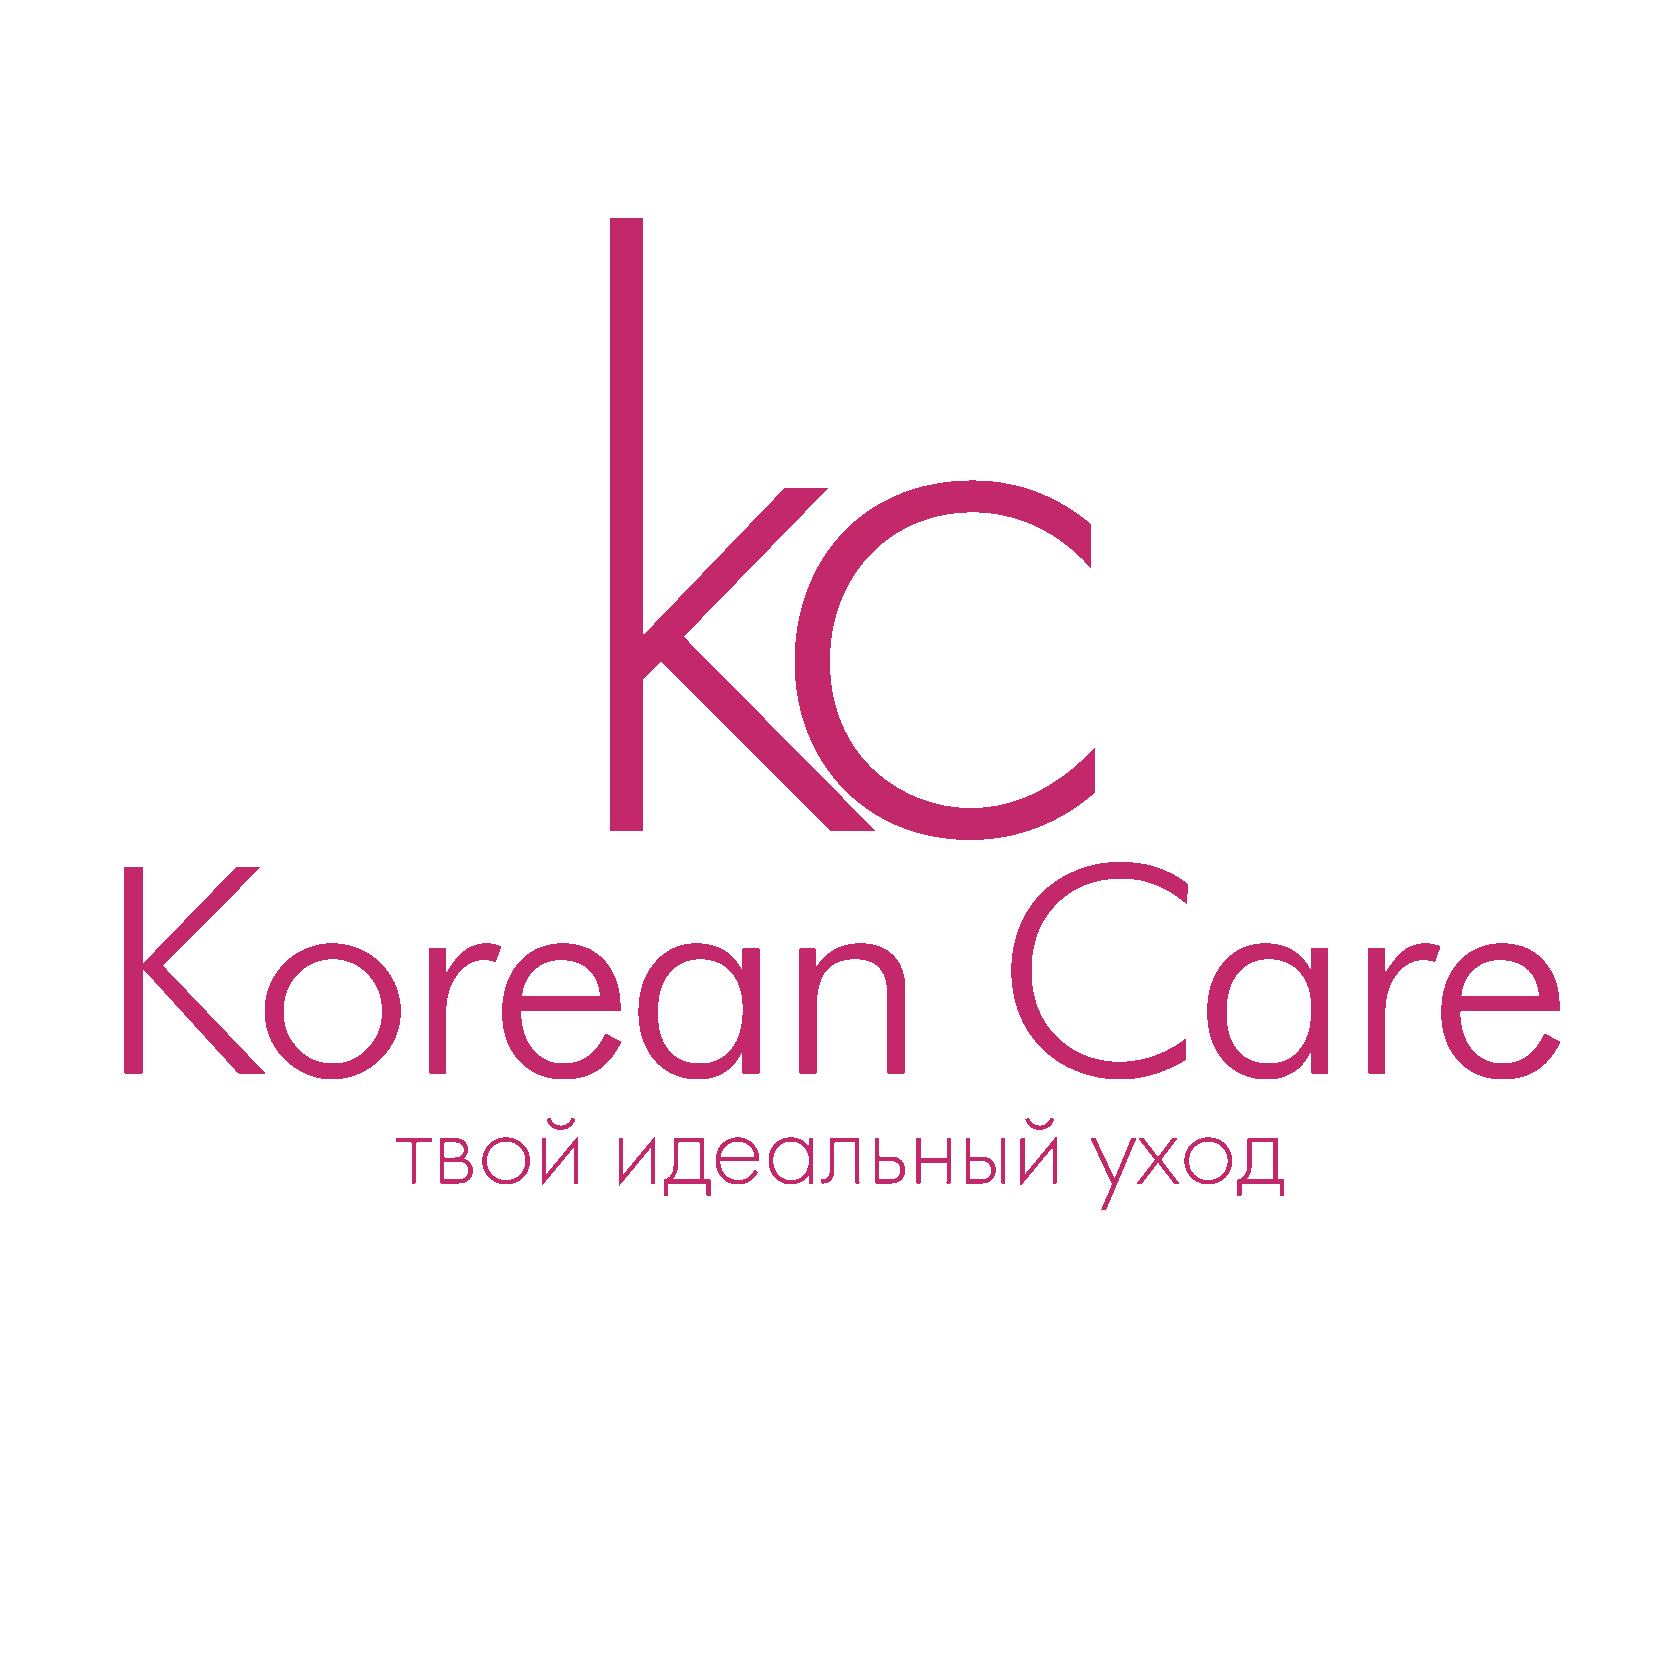 Korean Care